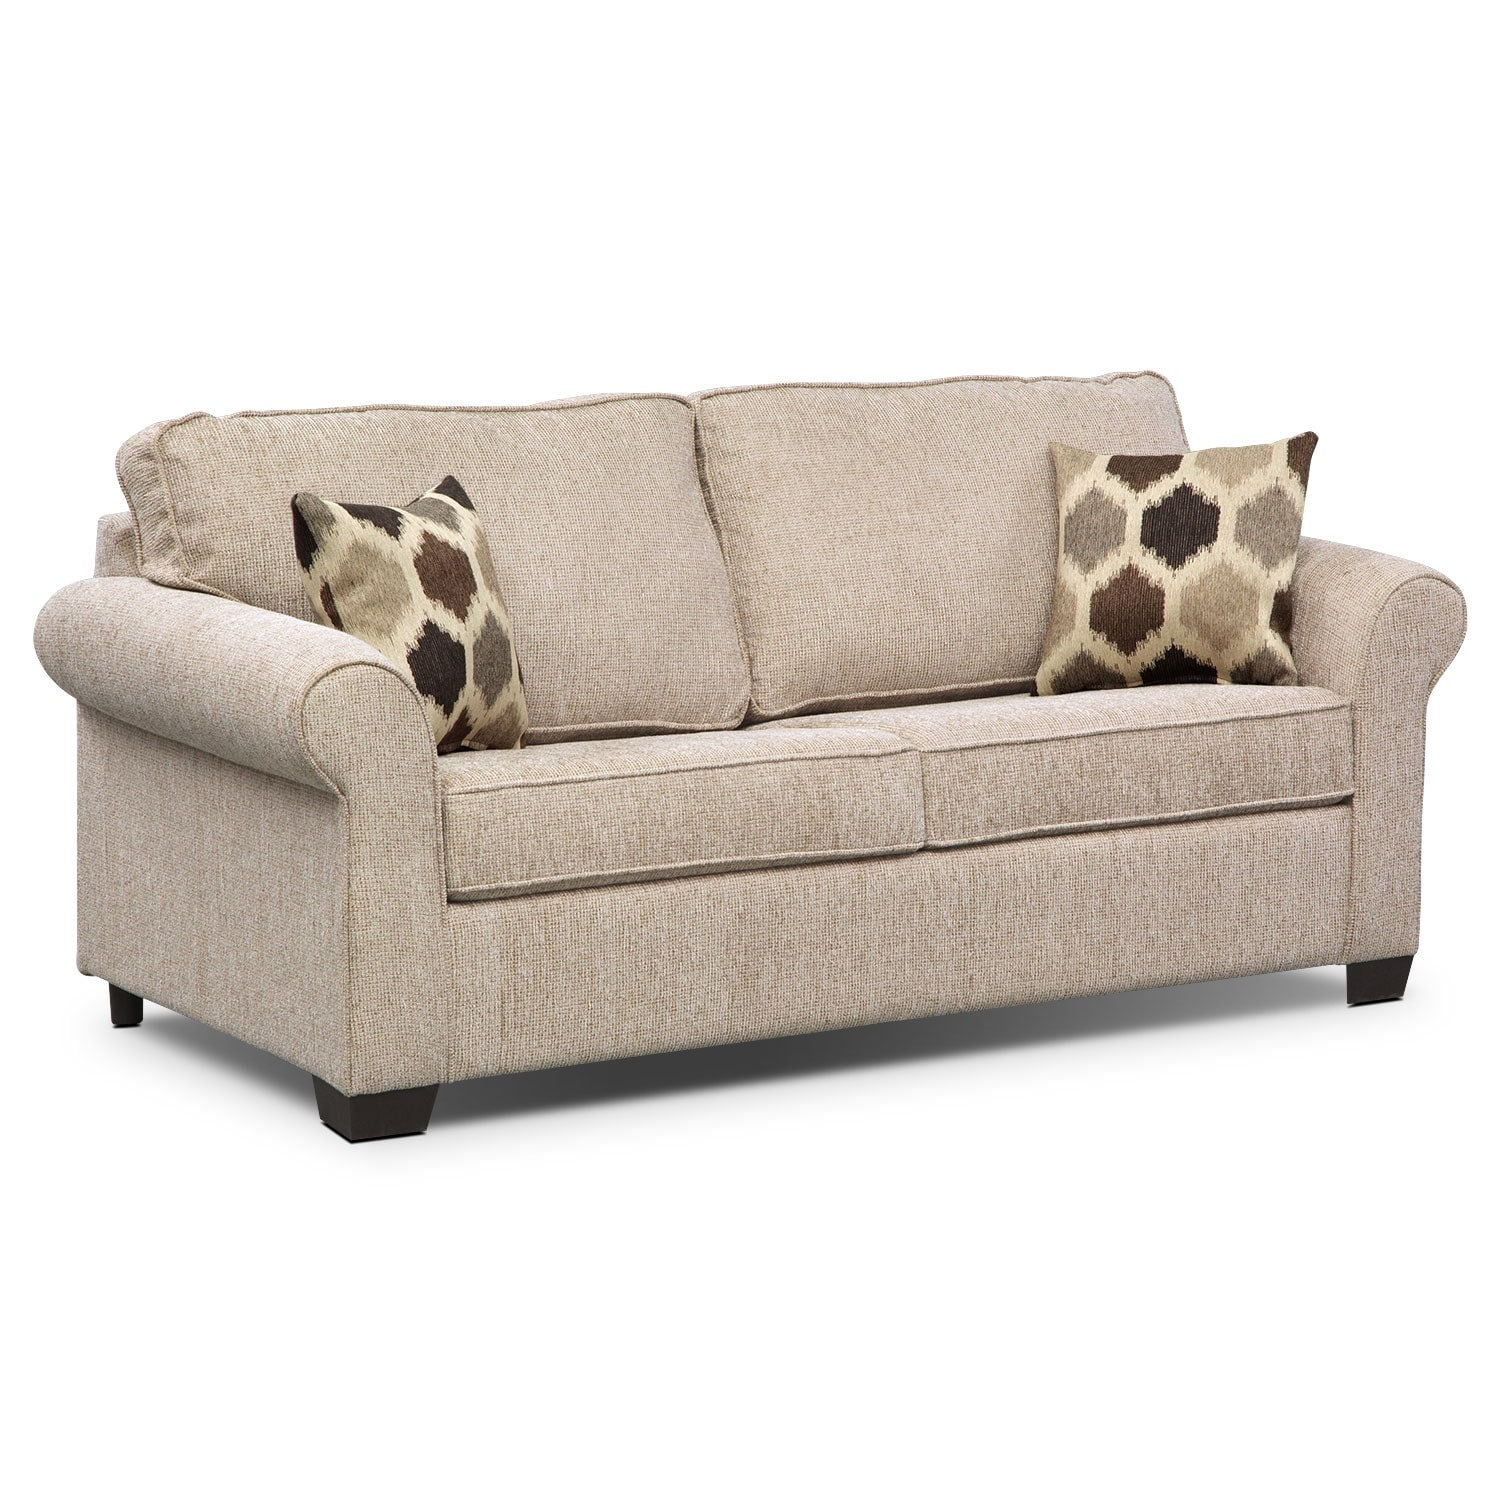 sleeper sofa living room sets. Fletcher Full Innerspring Sleeper Sofa  Beige Sofas Value City Furniture and